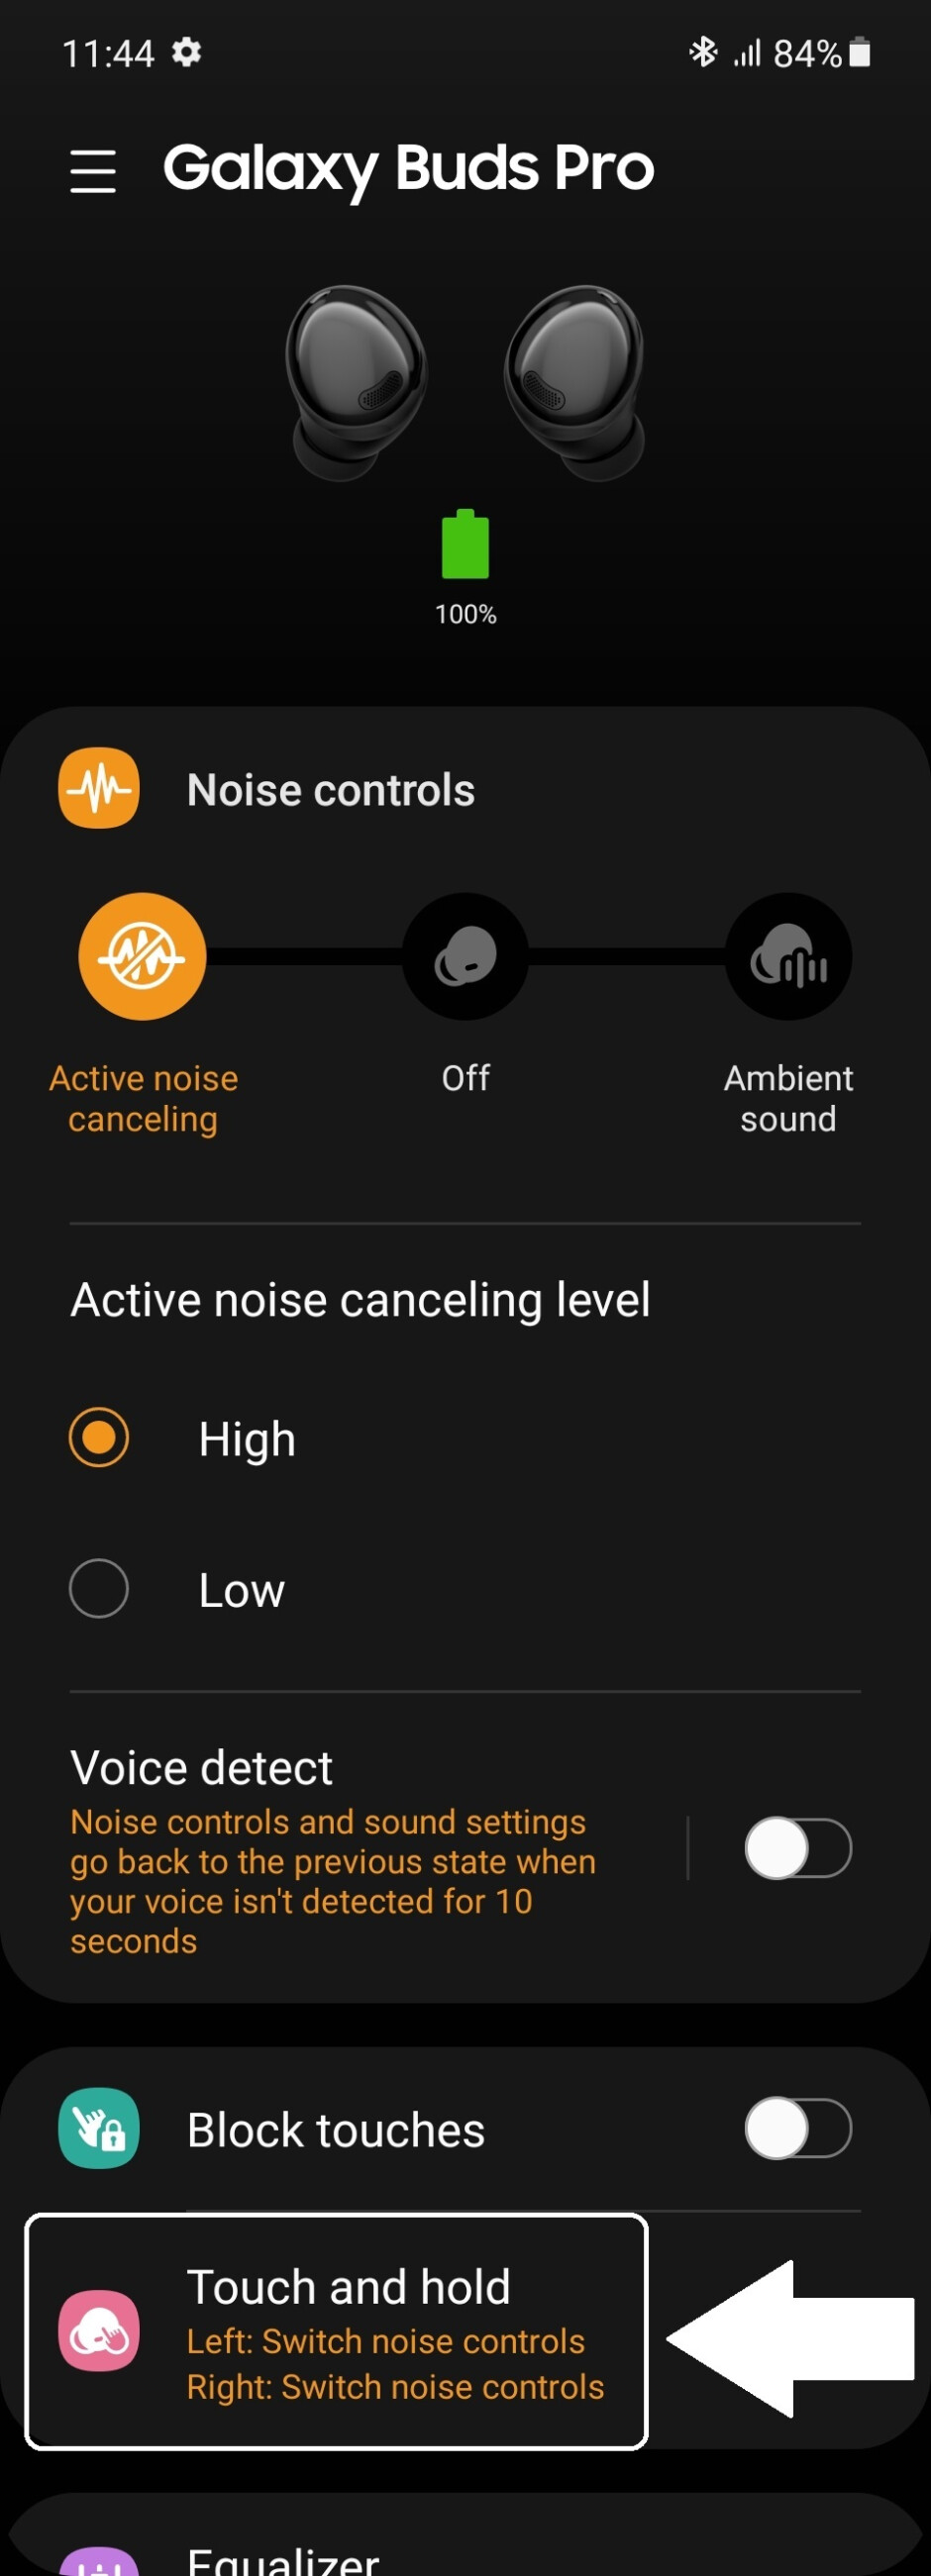 Once you're in the Galaxy Wearable app, all it takes is two taps, which we've shown here - How to control the volume on Galaxy Buds Pro with touch gestures